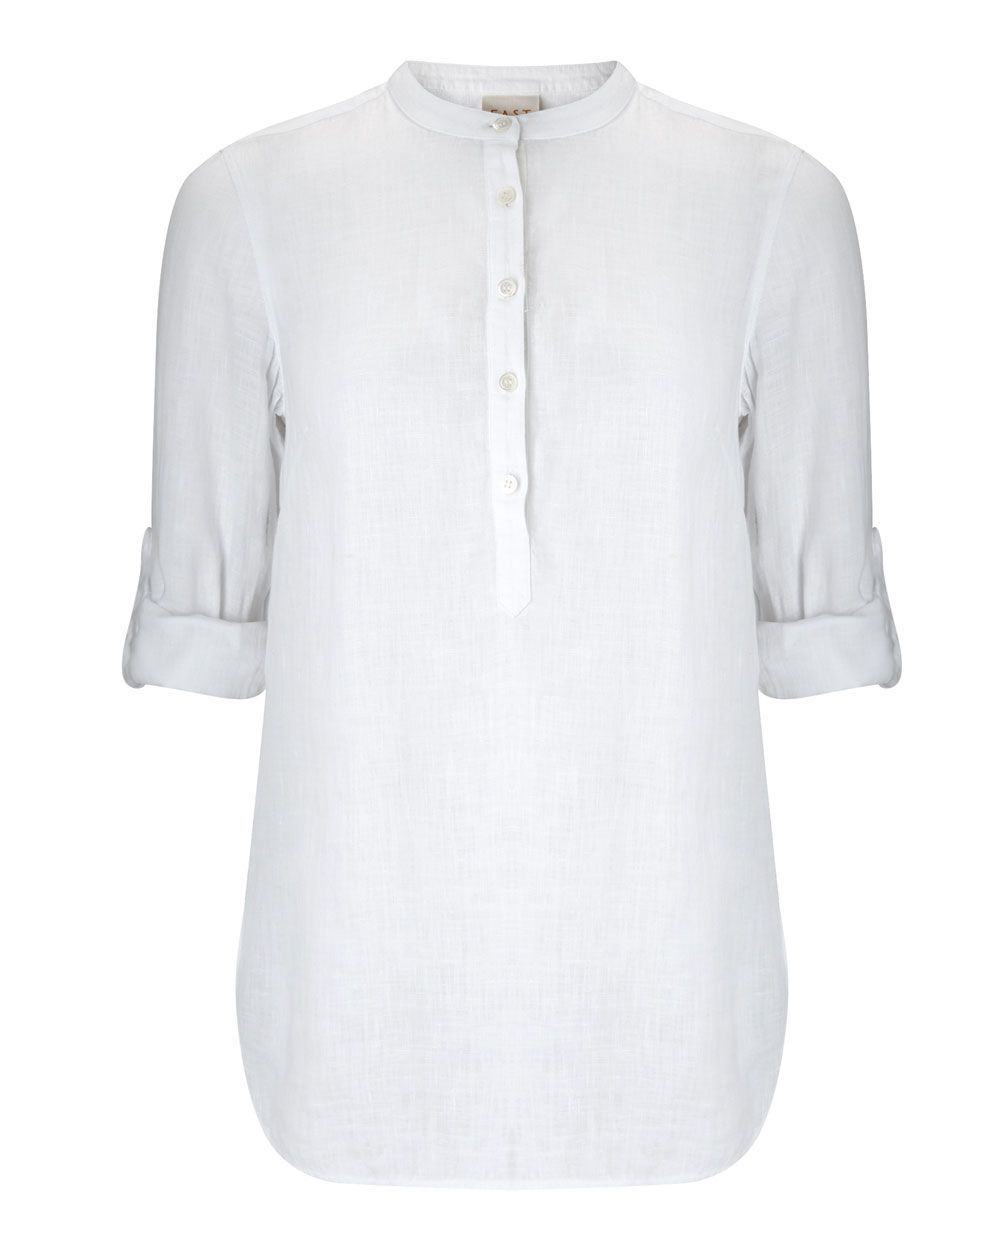 Linen Round Neck Shirt, White - pattern: plain; length: below the bottom; style: shirt; predominant colour: white; occasions: casual, creative work; neckline: collarstand; fibres: linen - 100%; fit: loose; sleeve length: half sleeve; sleeve style: standard; texture group: linen; pattern type: fabric; season: s/s 2016; wardrobe: basic